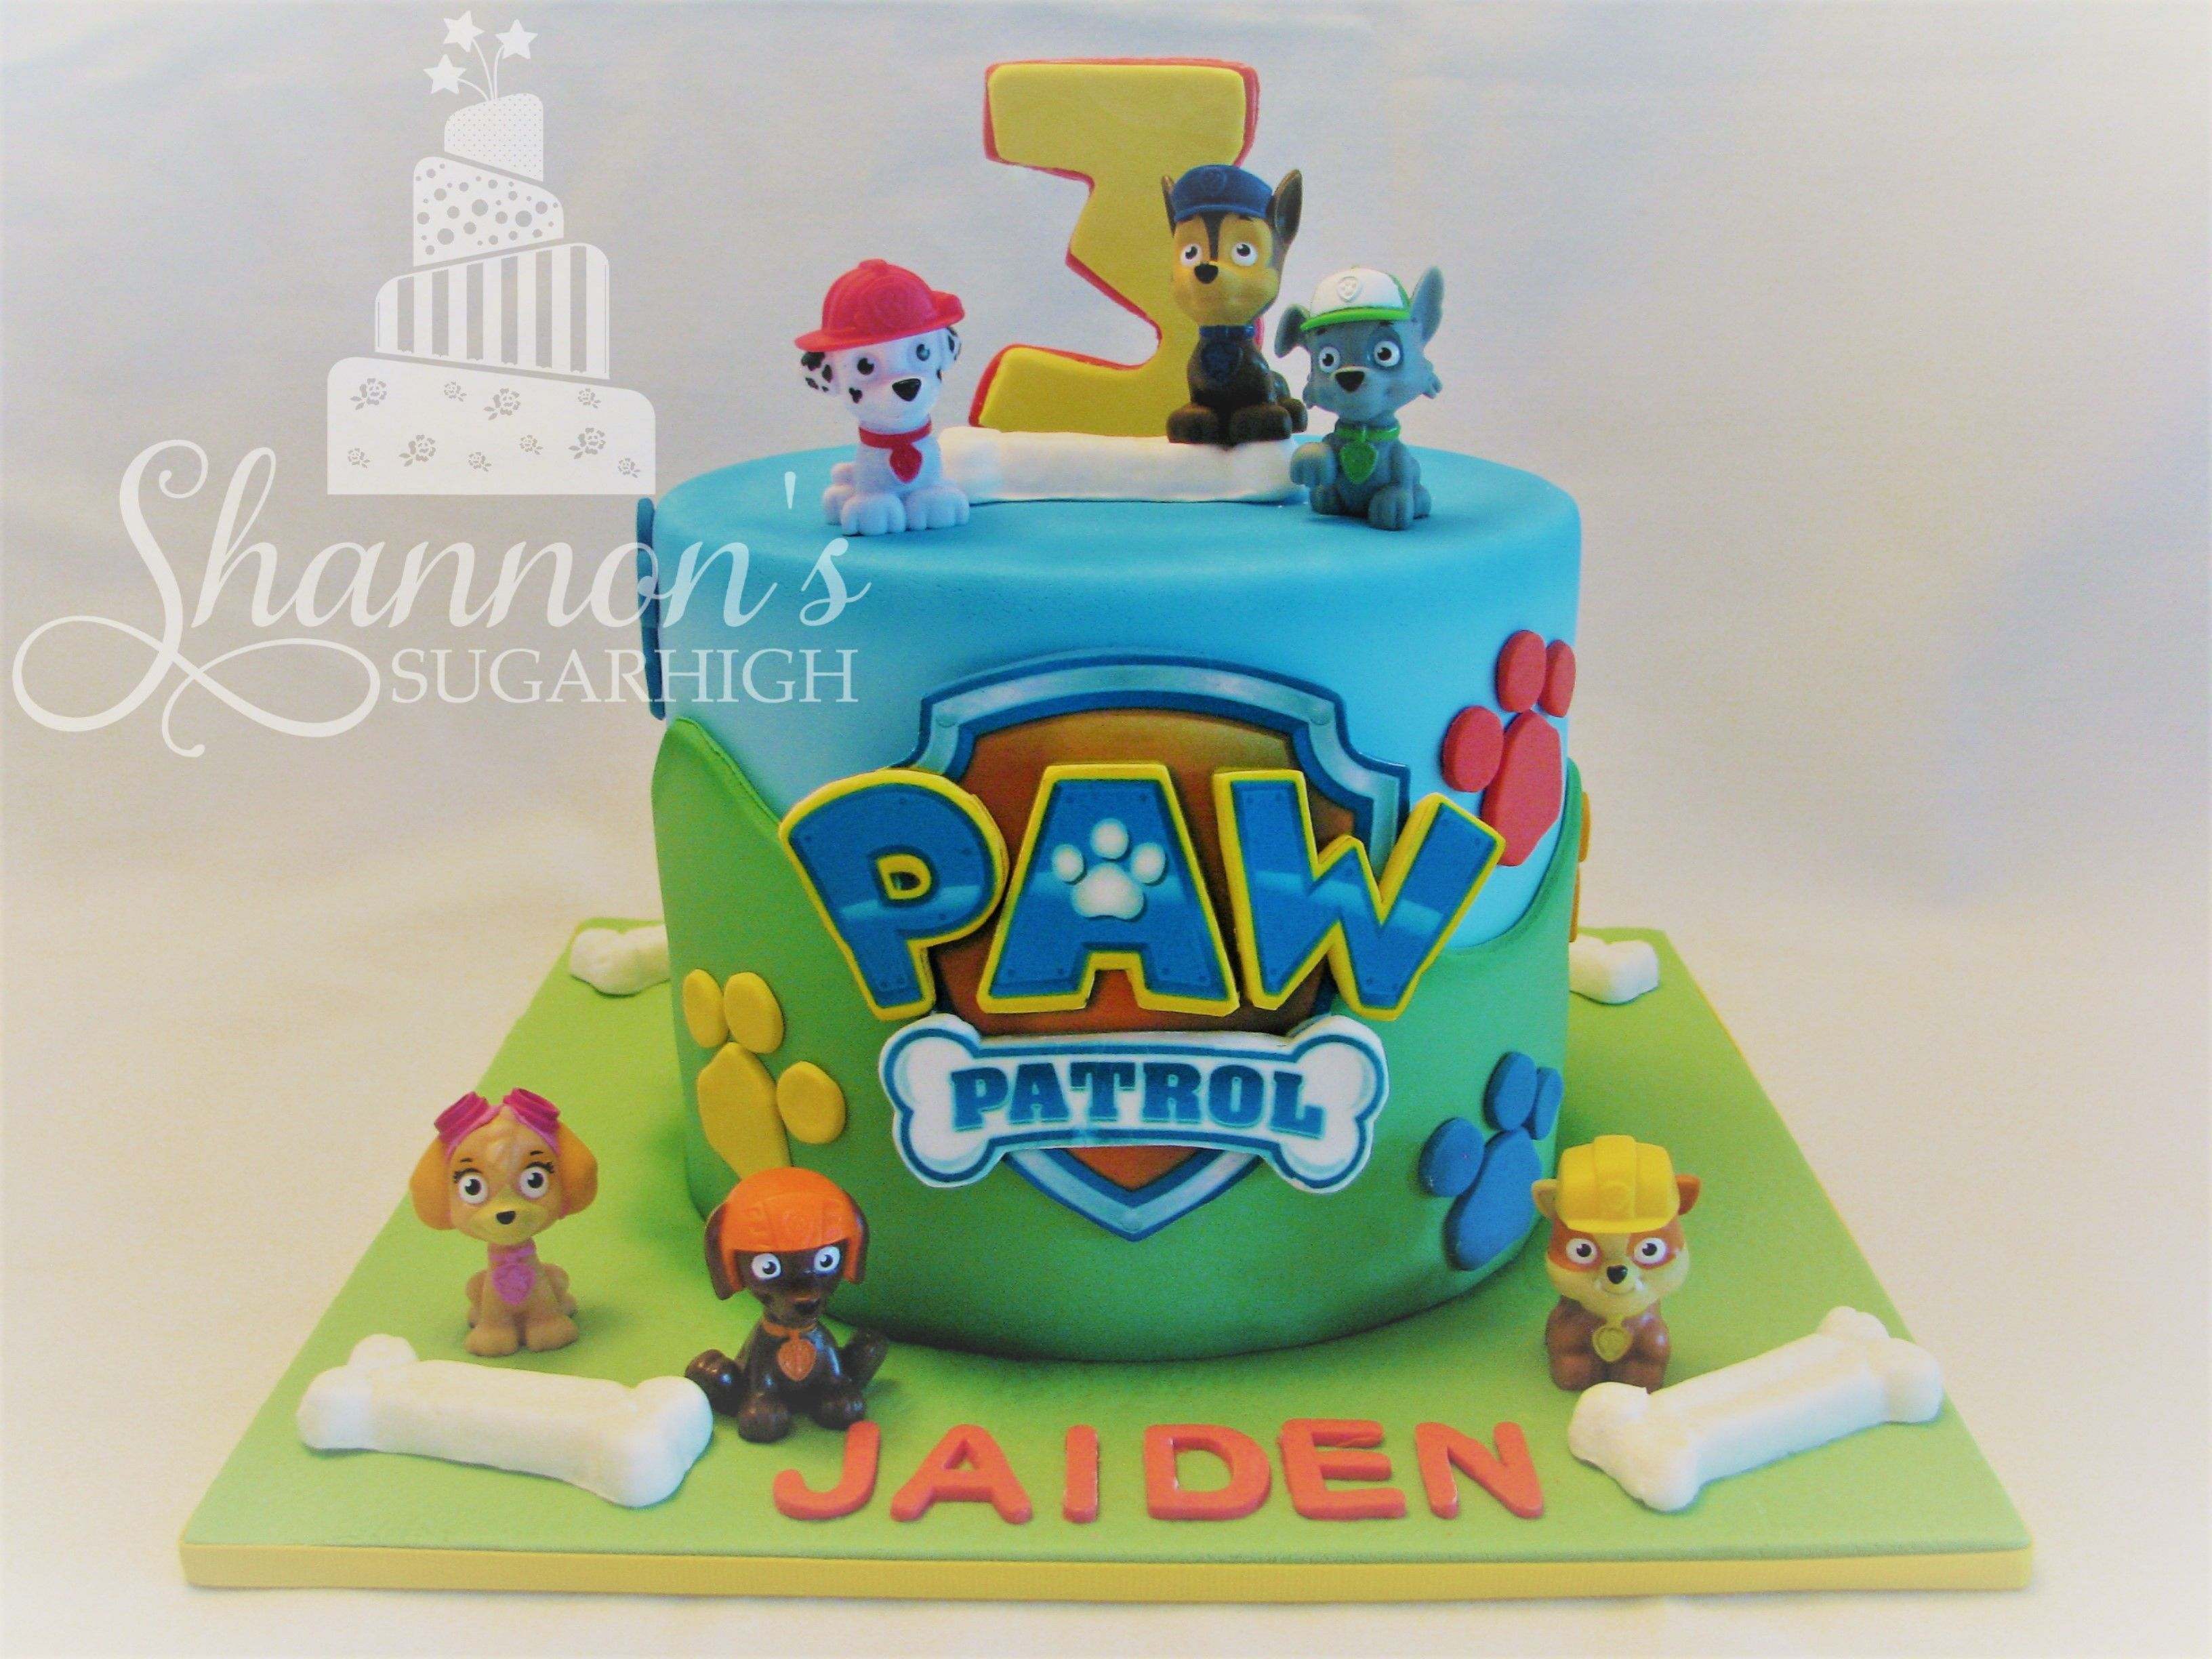 Kids Toys Action Figure: Fondant Covered Round PAW Patrol Cake With Toy Figurines